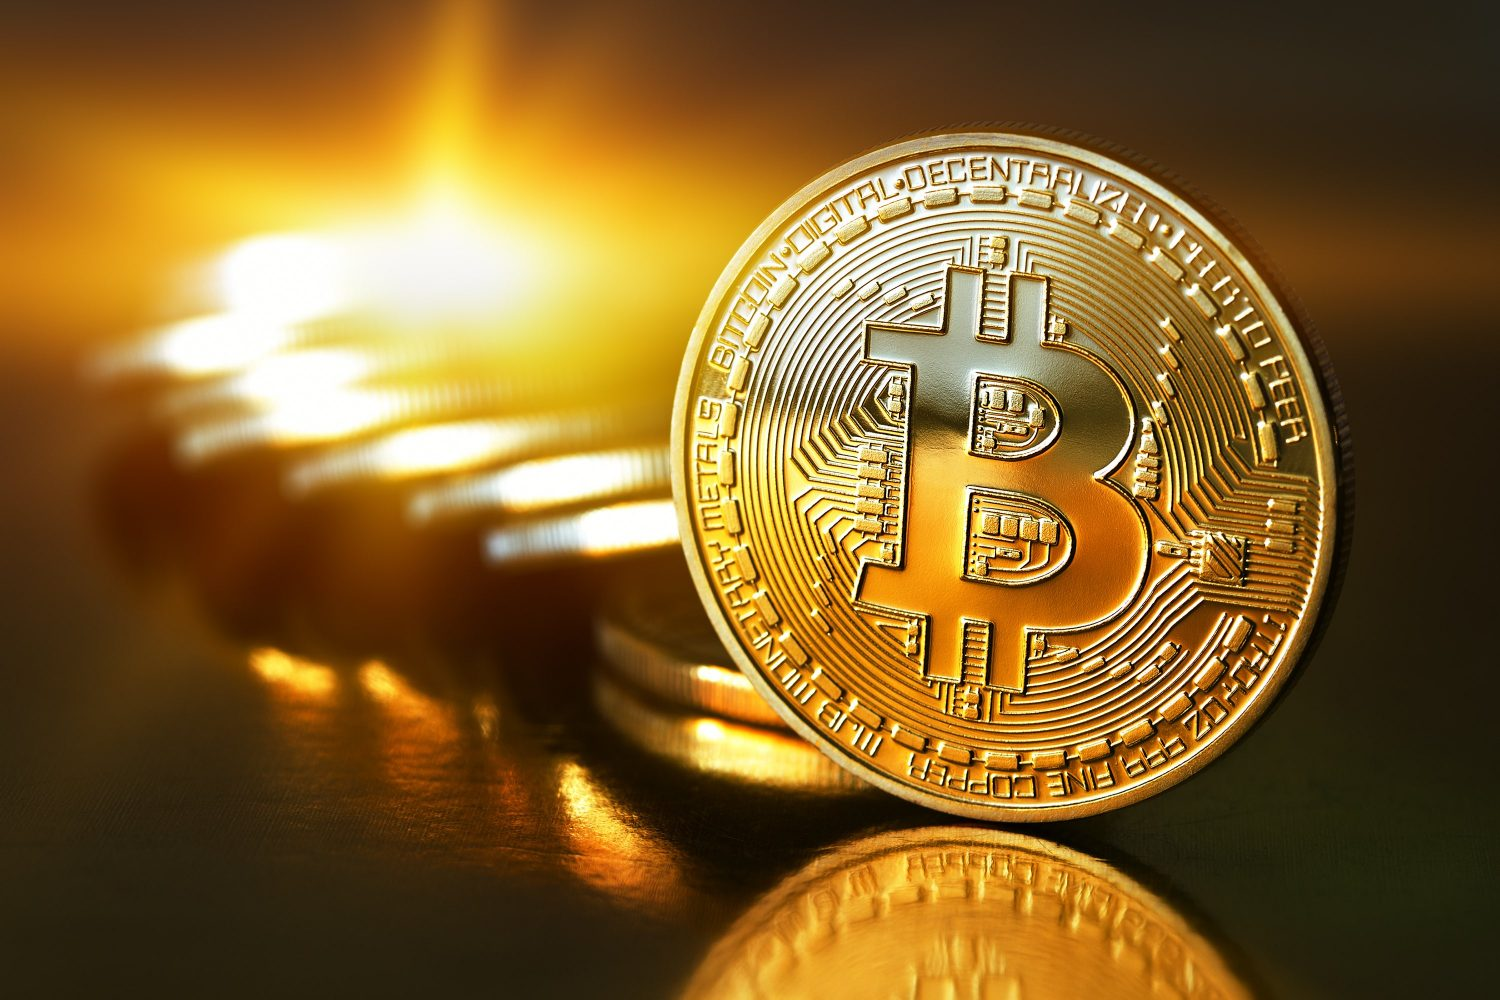 Opimas Observes That US$190 Billion Worth of Bitcoin is Currently at Risk Due to Subpar Safekeeping